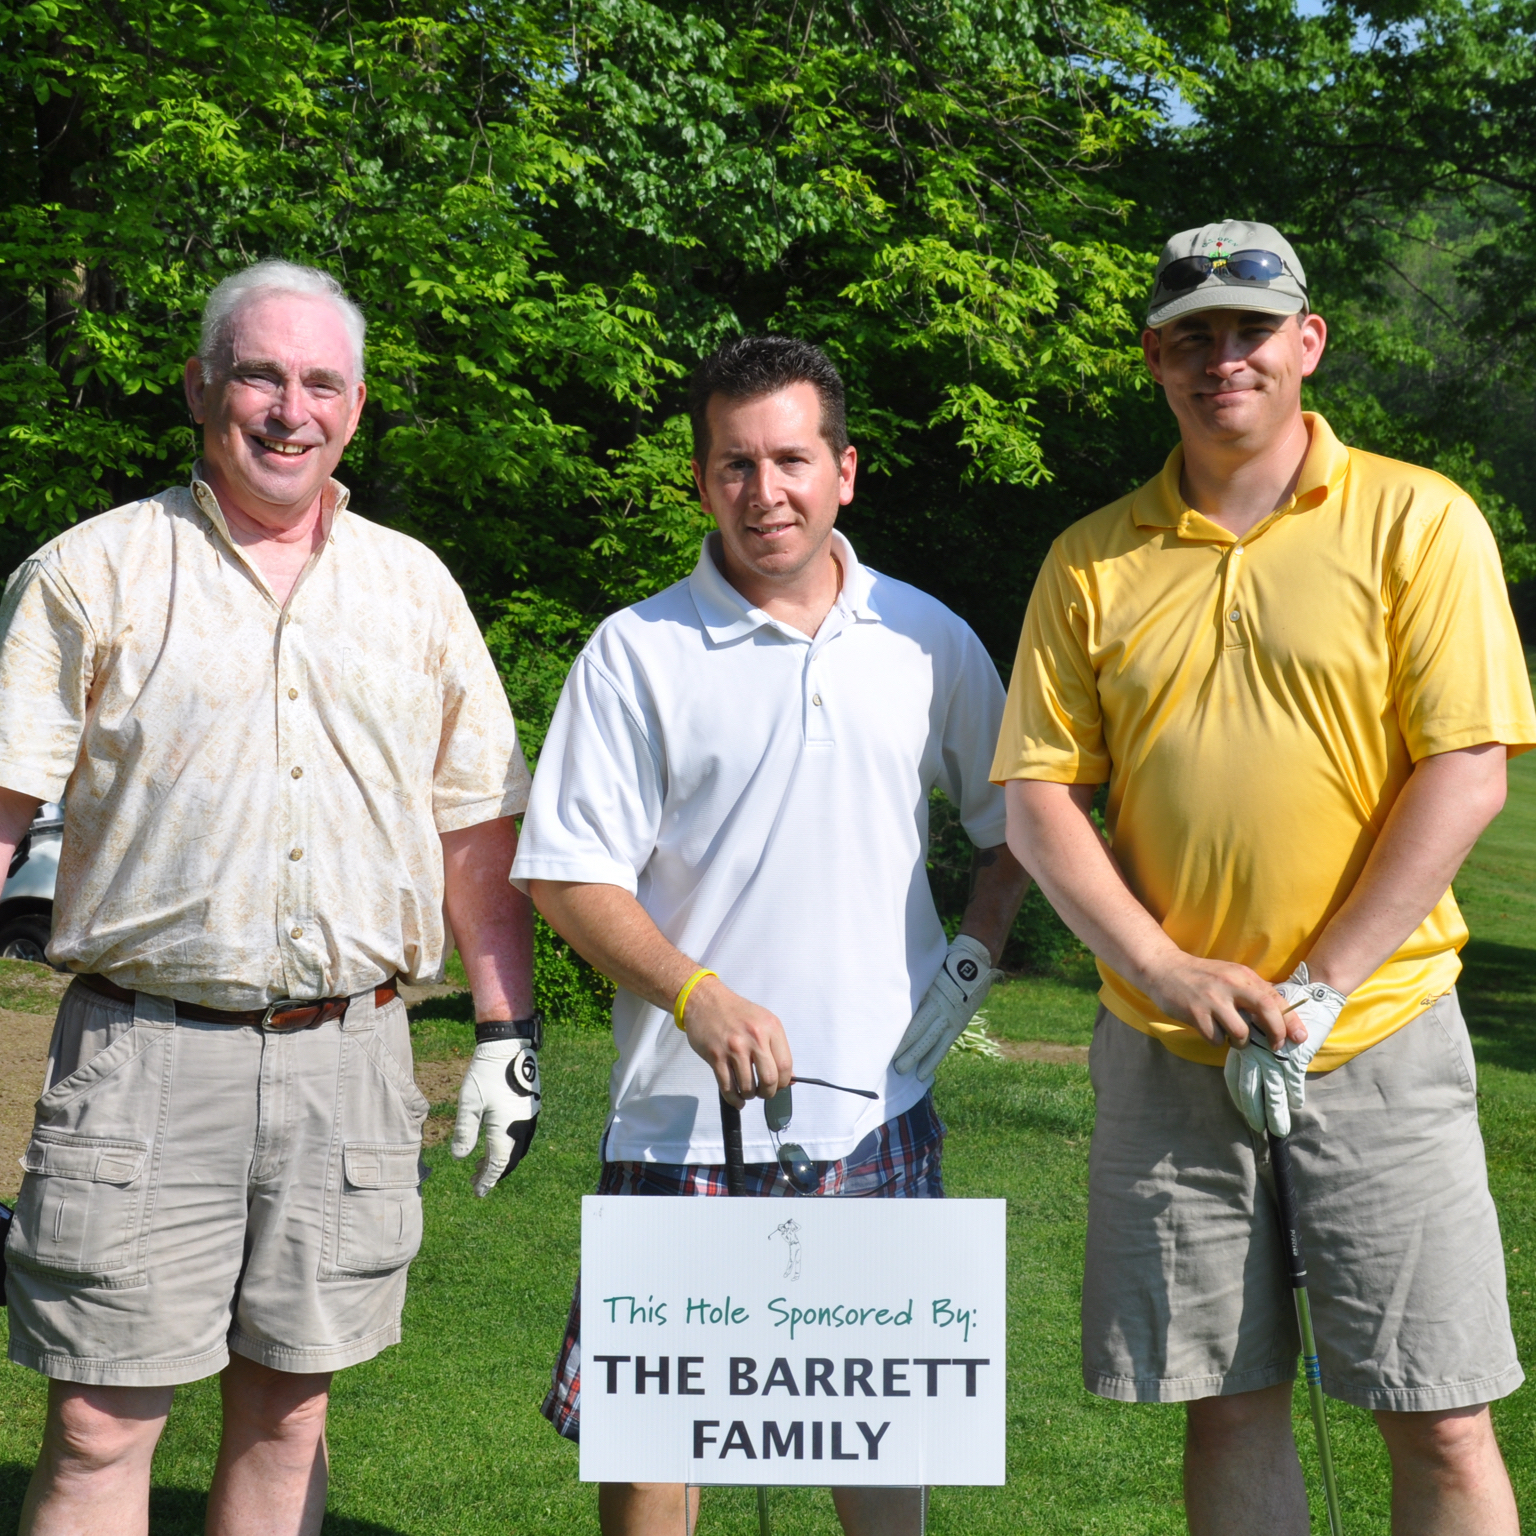 The Barrett family holding a sign that they sponsored a hole in a golf course